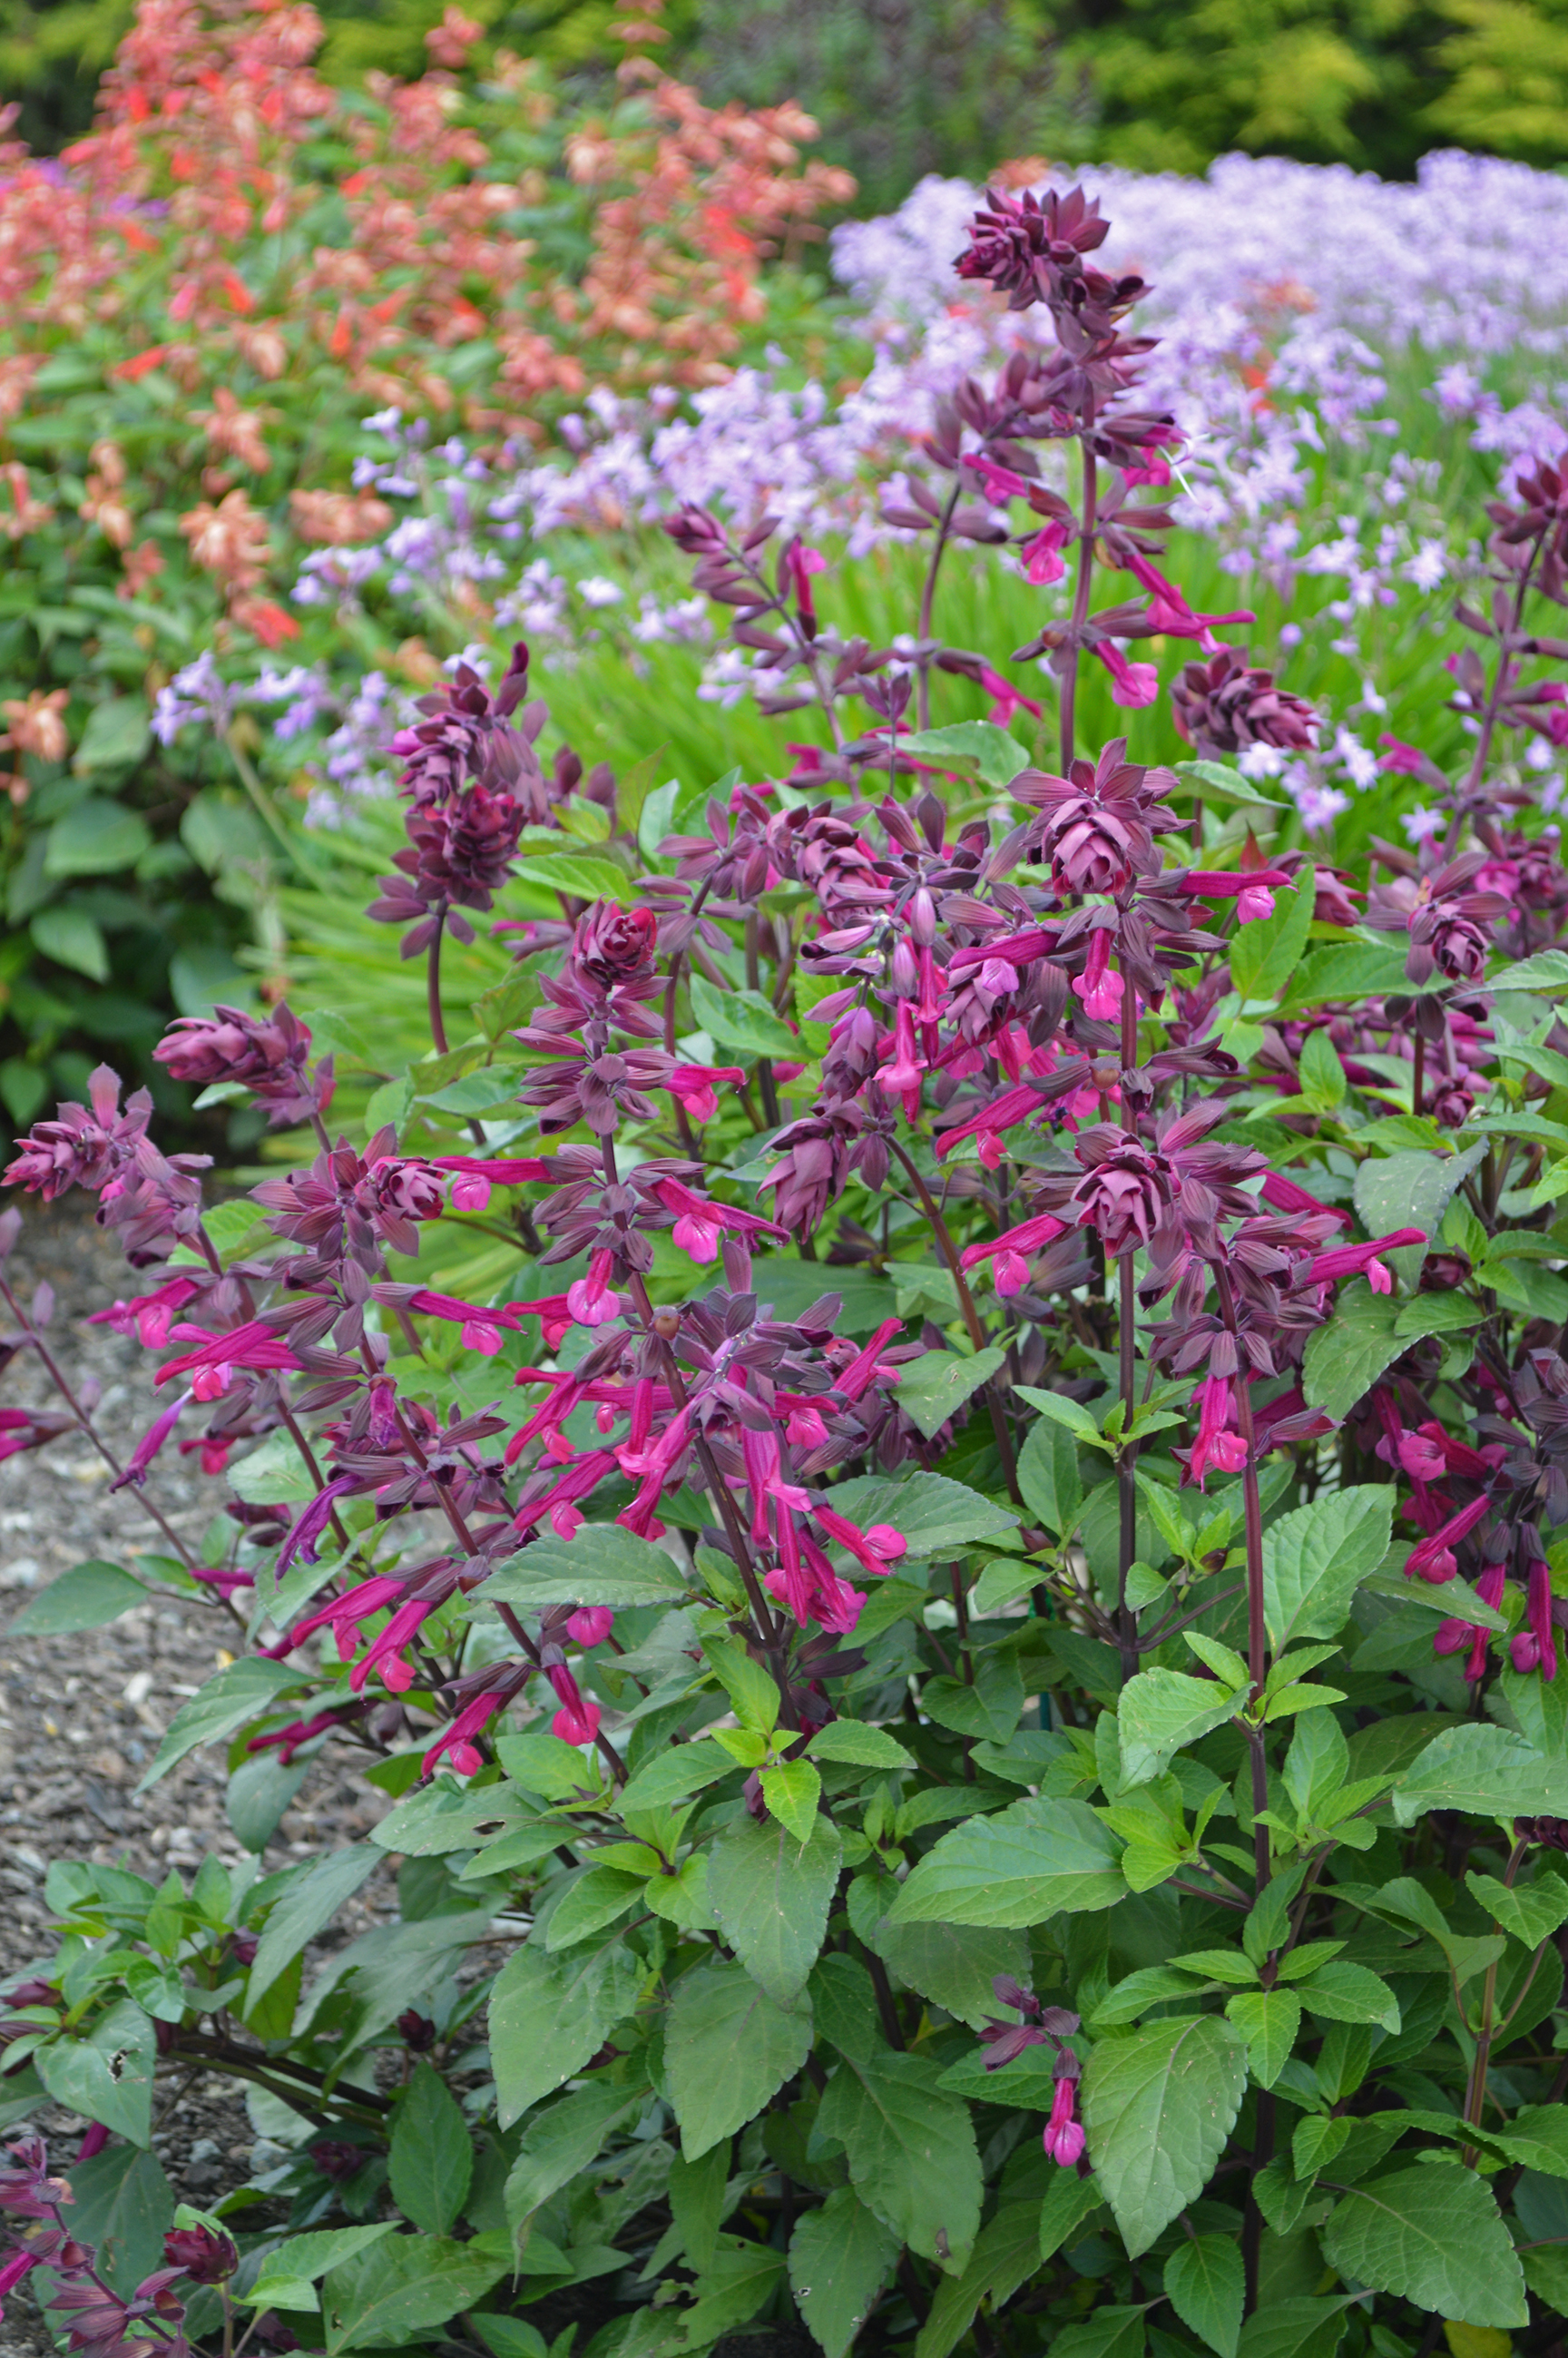 Love and Wishes makes a great garden plant - choose a sunny position in well-drained soil.